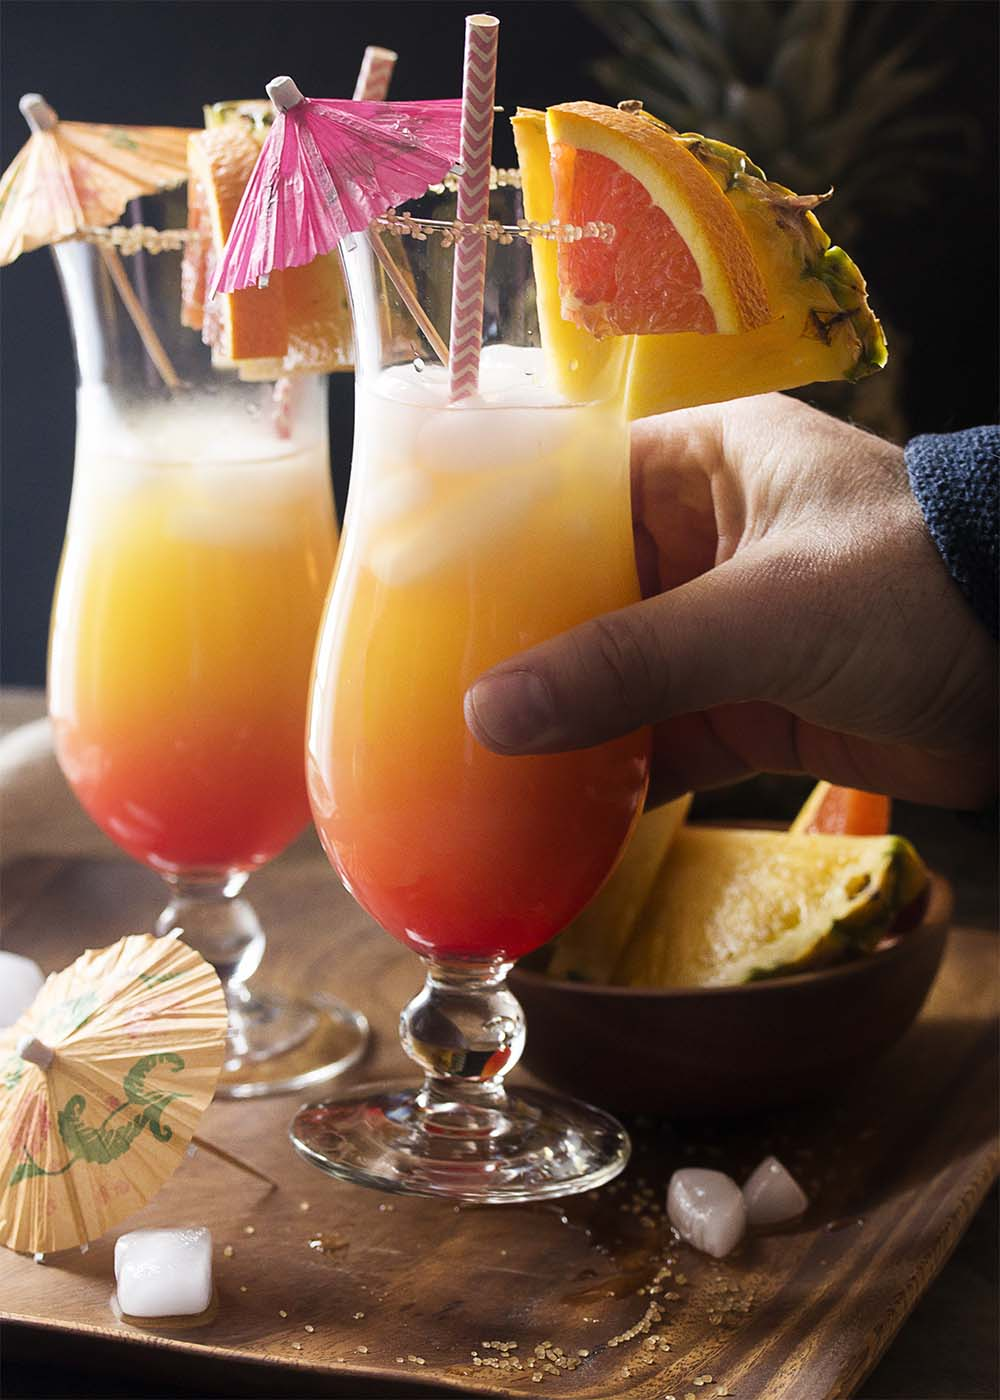 A hand taking a glass of the rum punch showing the layered sunset effect from the grenadine.